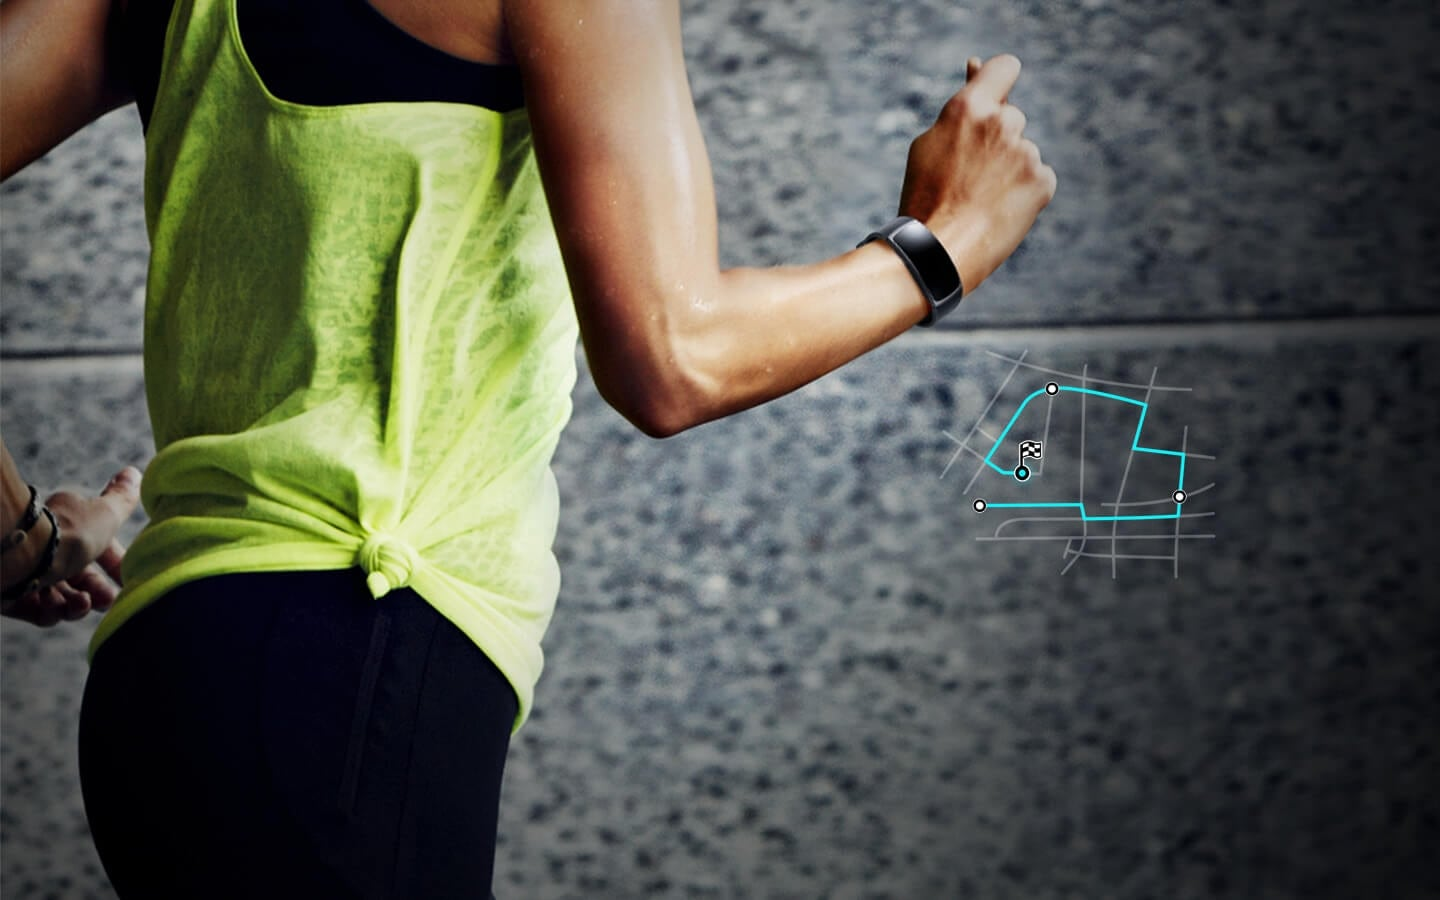 Woman's running route is tracked by the GPS on the Gear Fit2 she's wearing